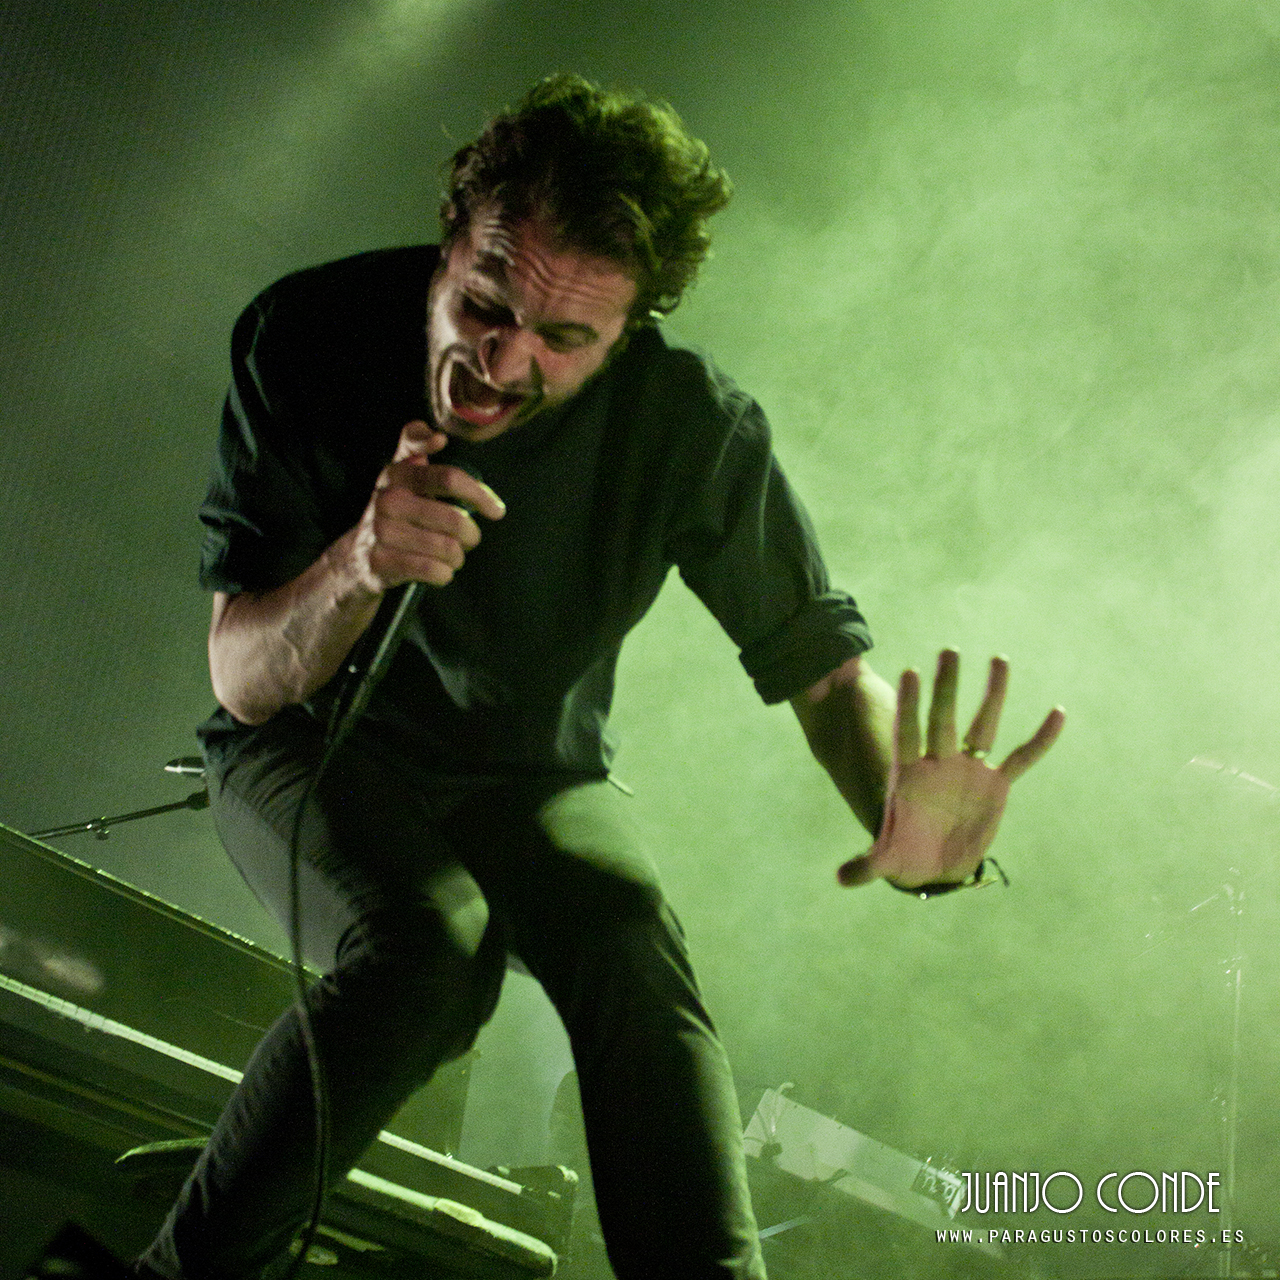 editors tom smith october drift pelicano coruña 2018